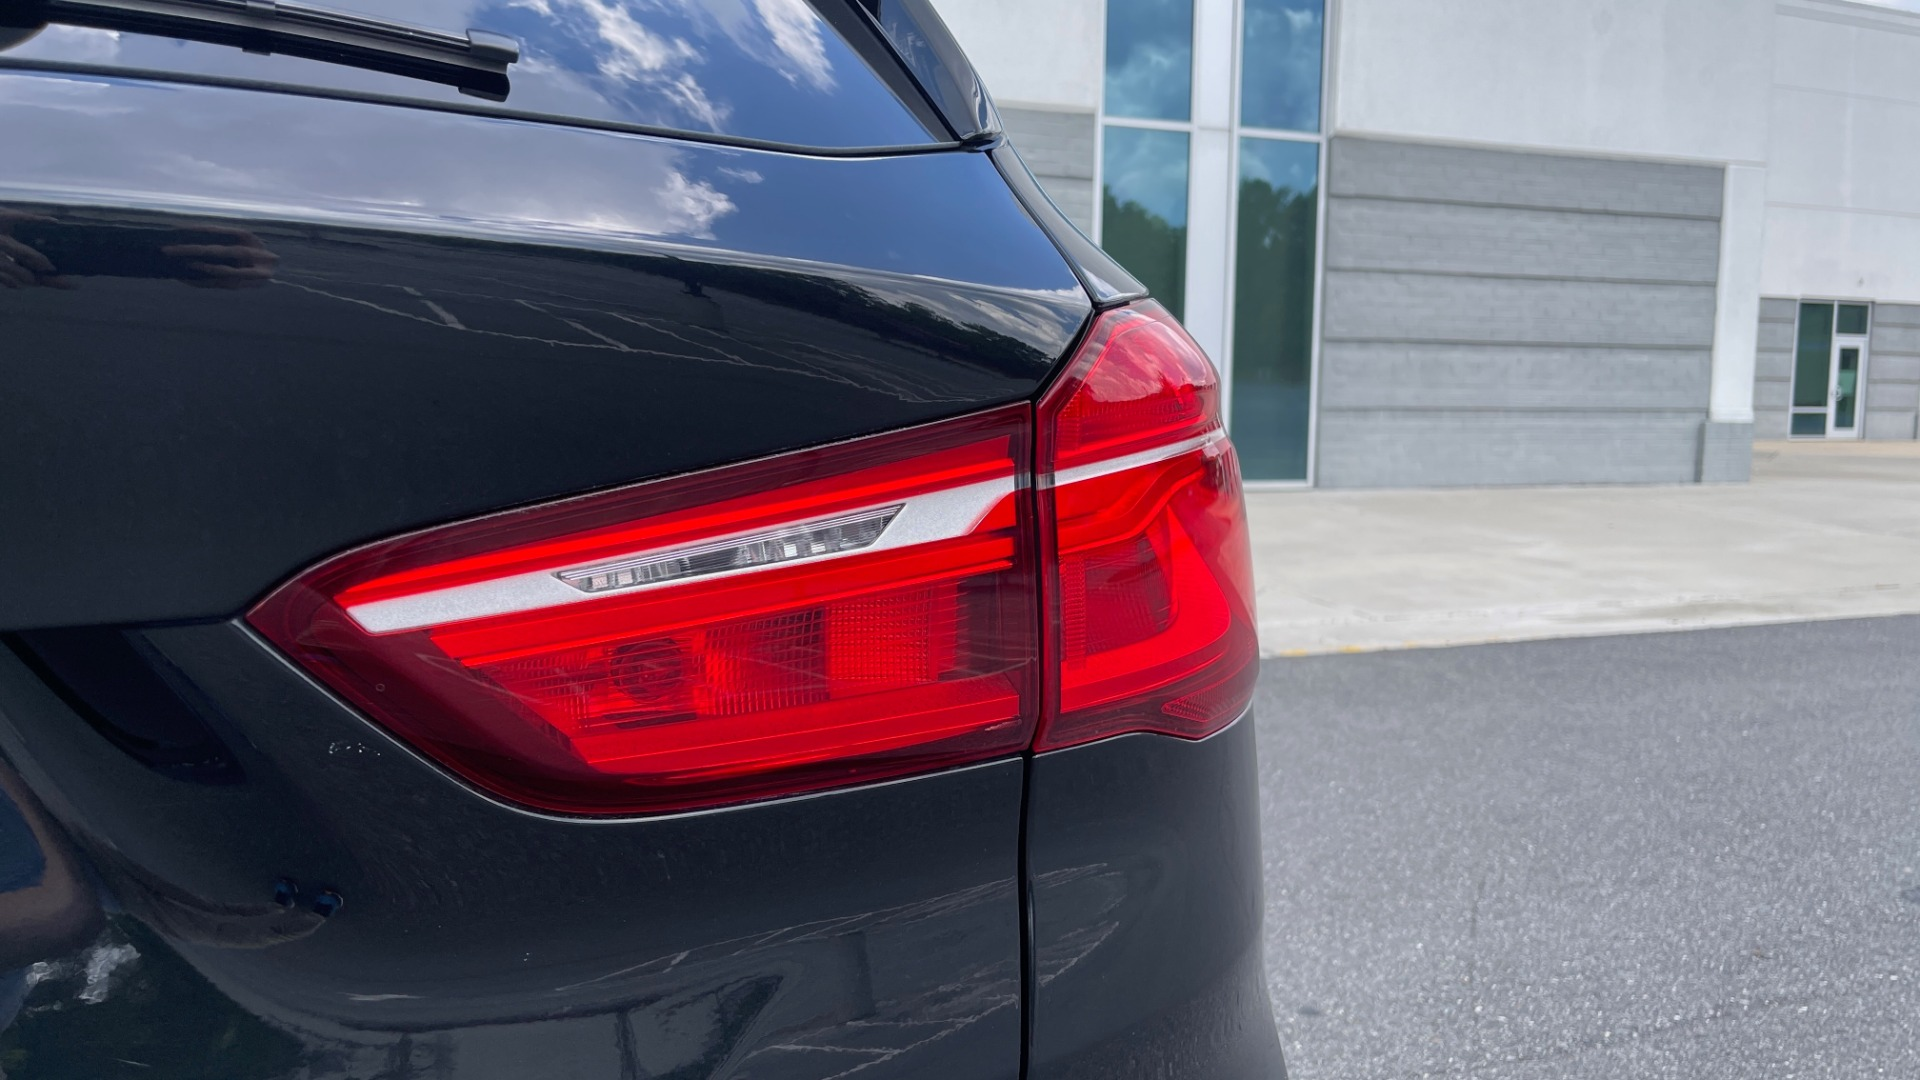 Used 2018 BMW X1 XDRIVE28I / NAV / CONV PKG / HTD STS / PANO-ROOF / REARVIEW for sale $29,995 at Formula Imports in Charlotte NC 28227 24